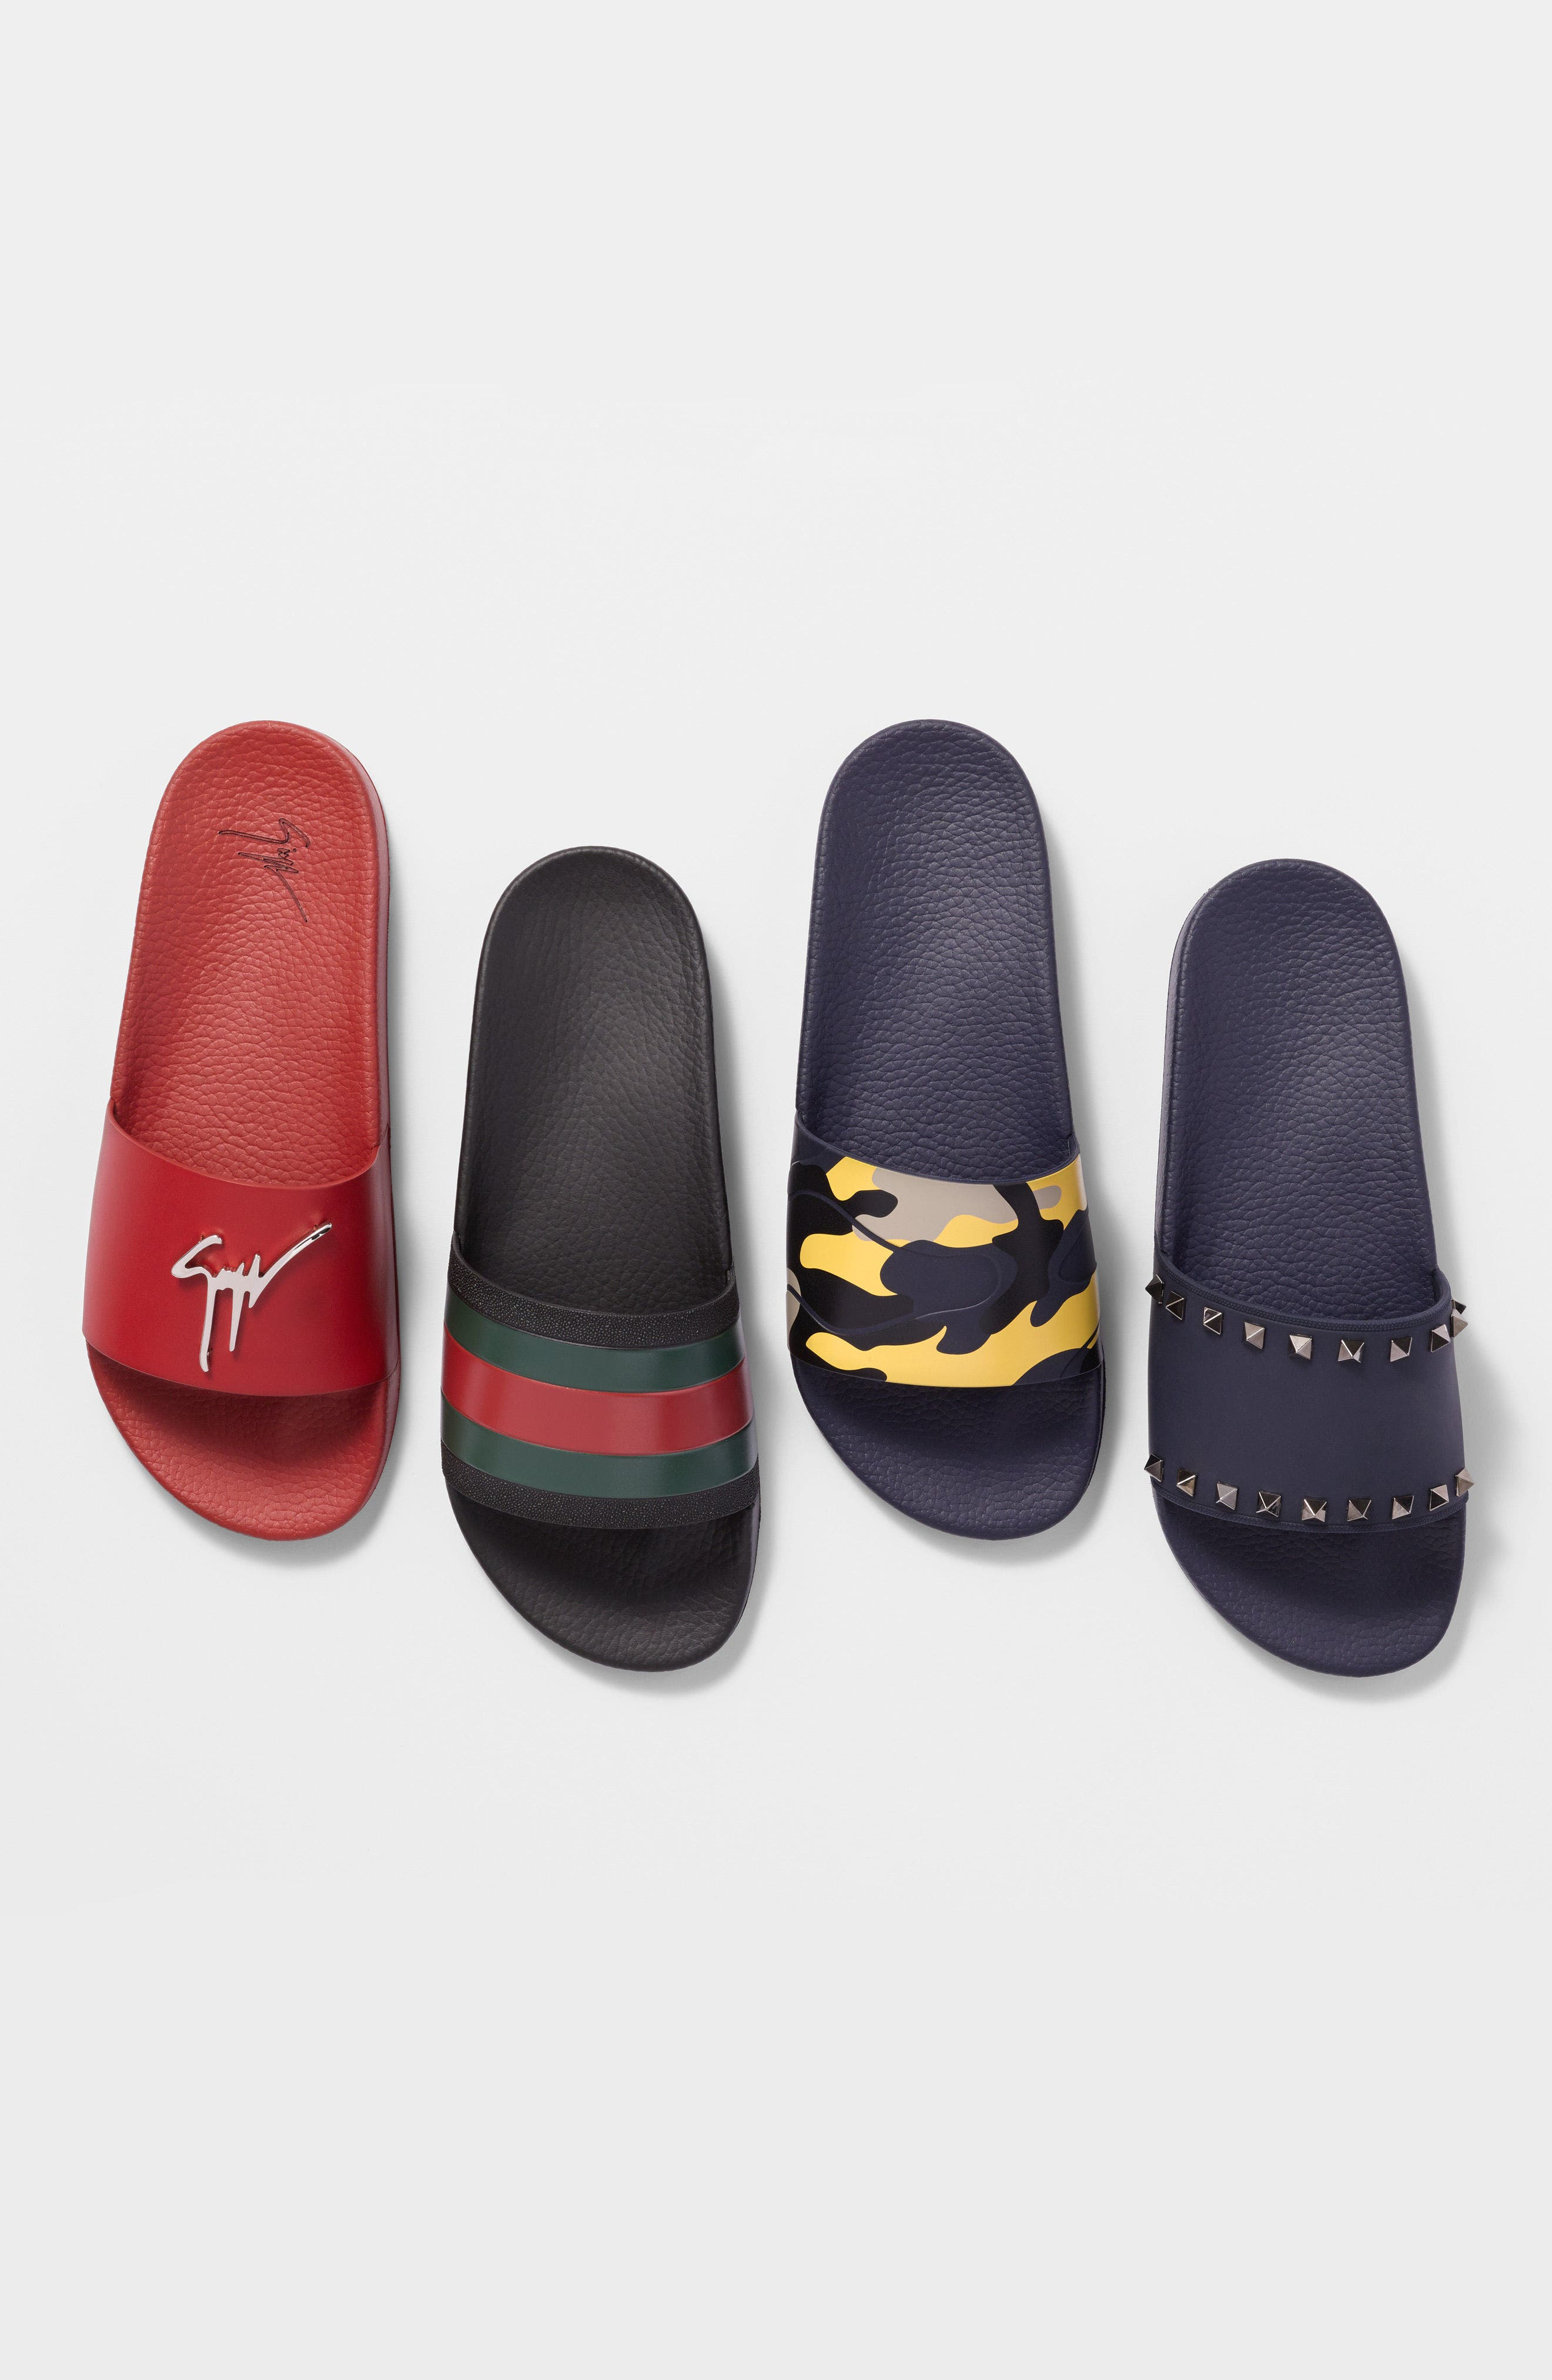 Slide Sandal,                             Alternate thumbnail 7, color,                             NERO